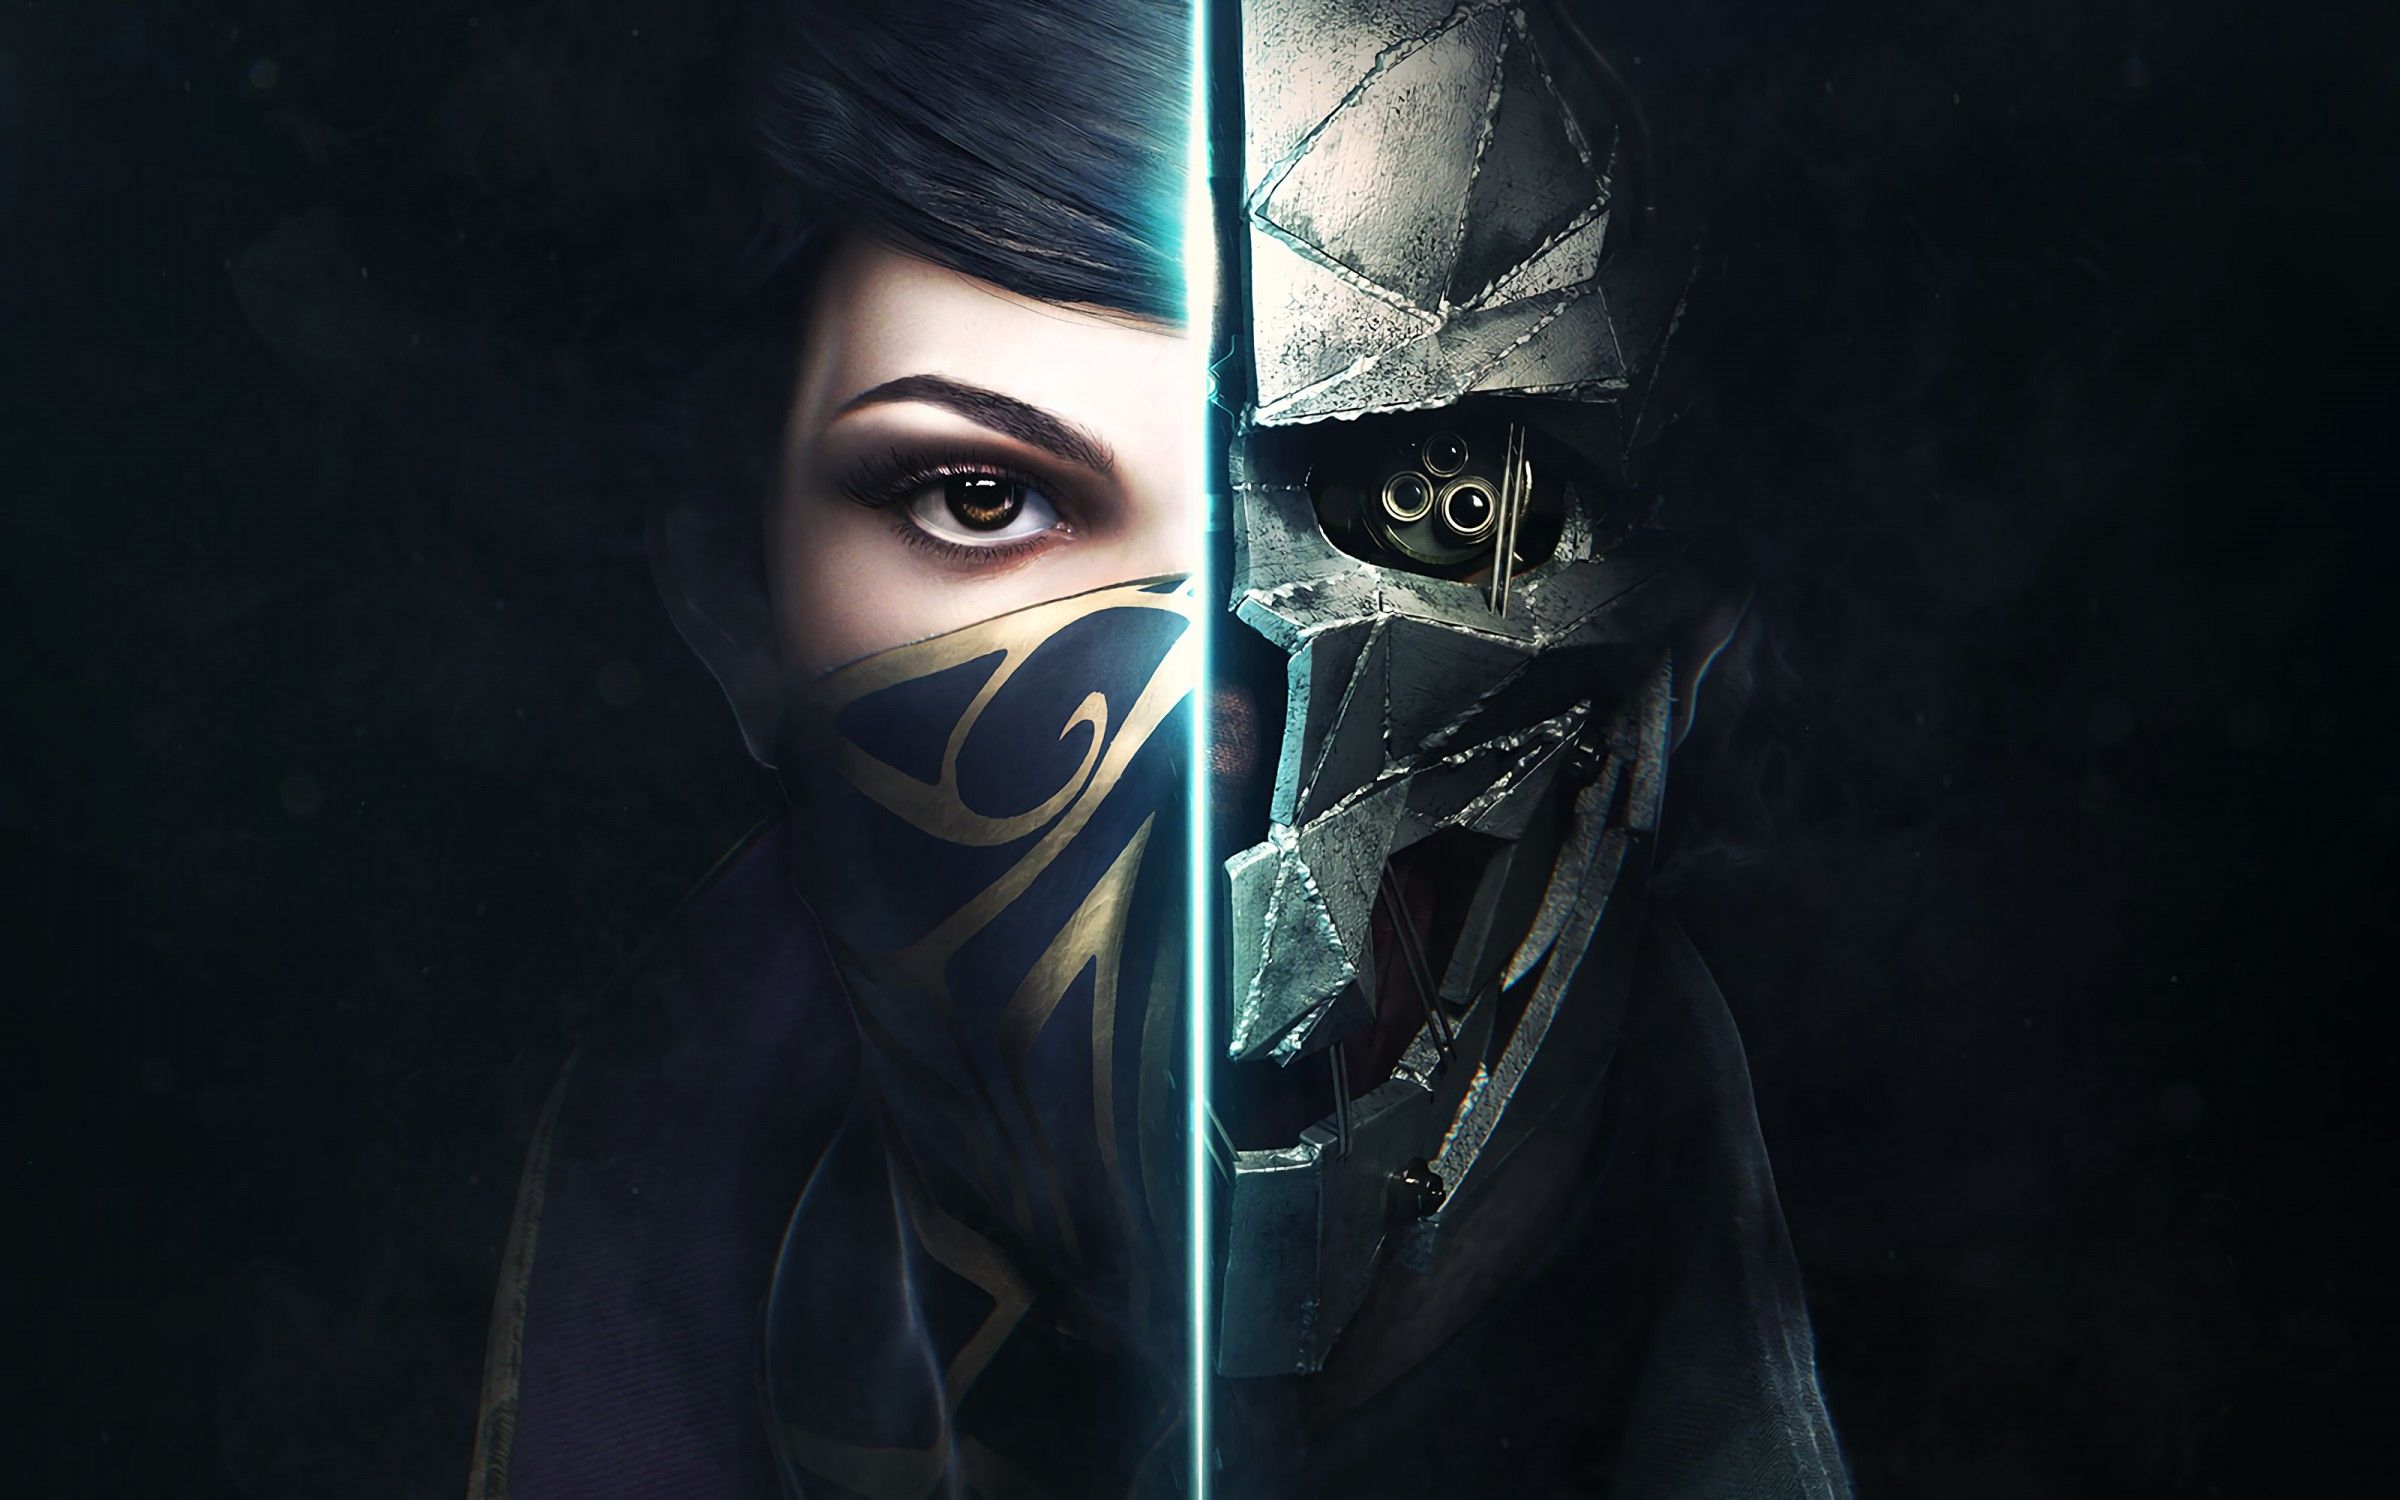 Dishonored 2 Emily Pictures Click Wallpapers Dishonored 2 Dishonored Top 10 Video Games